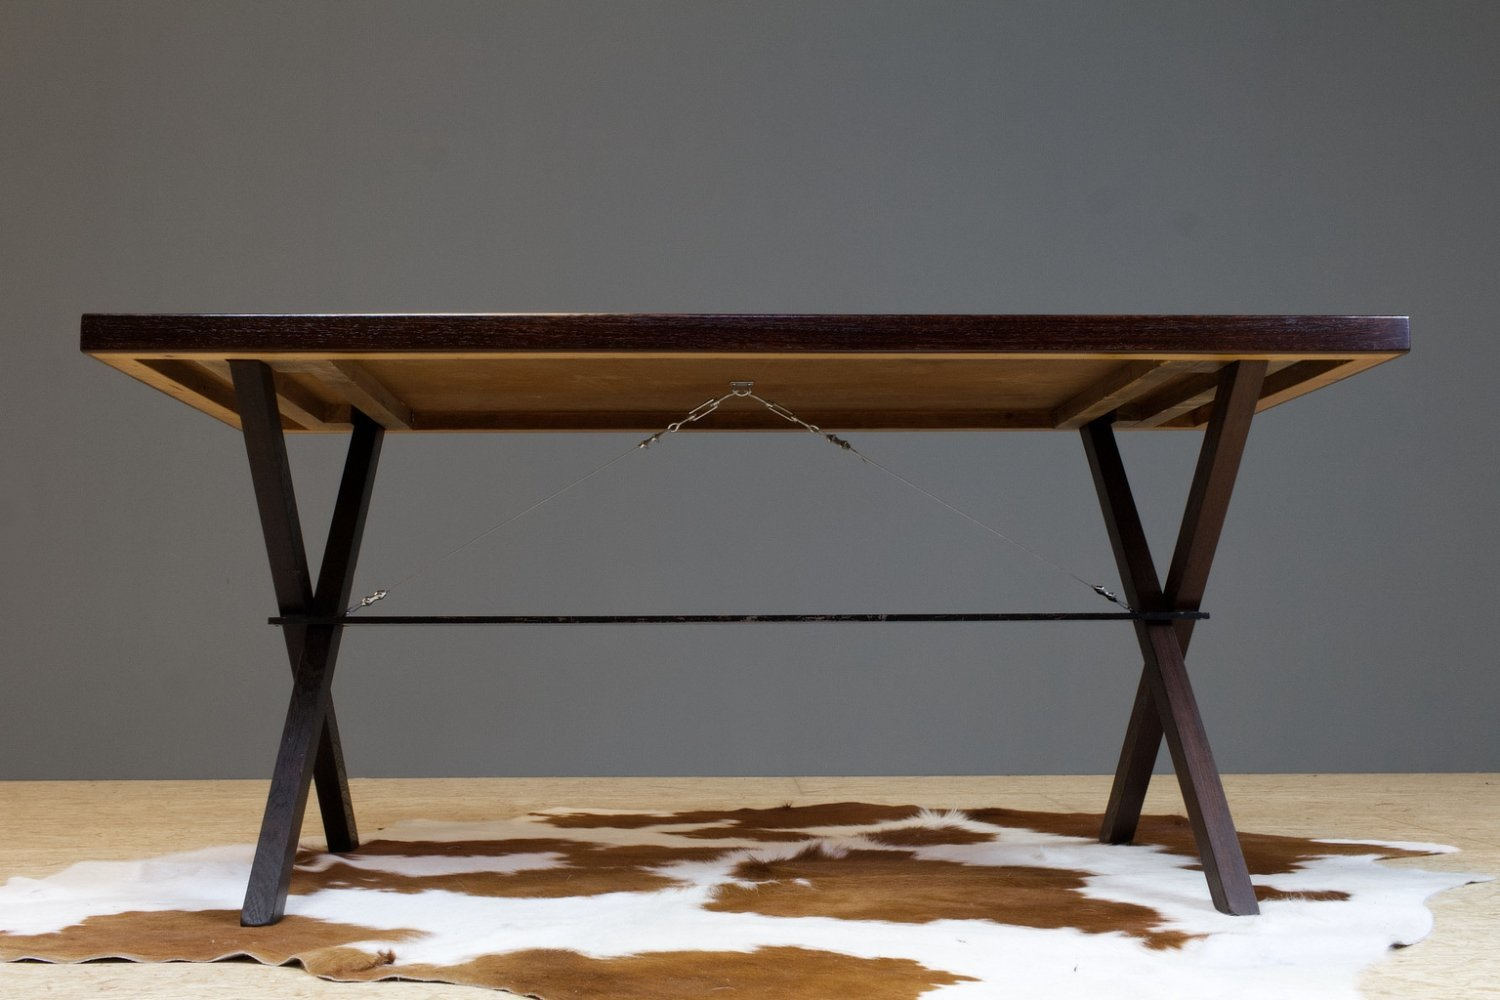 Metz & Co table in wenge with x-wing legged frame, 1970s